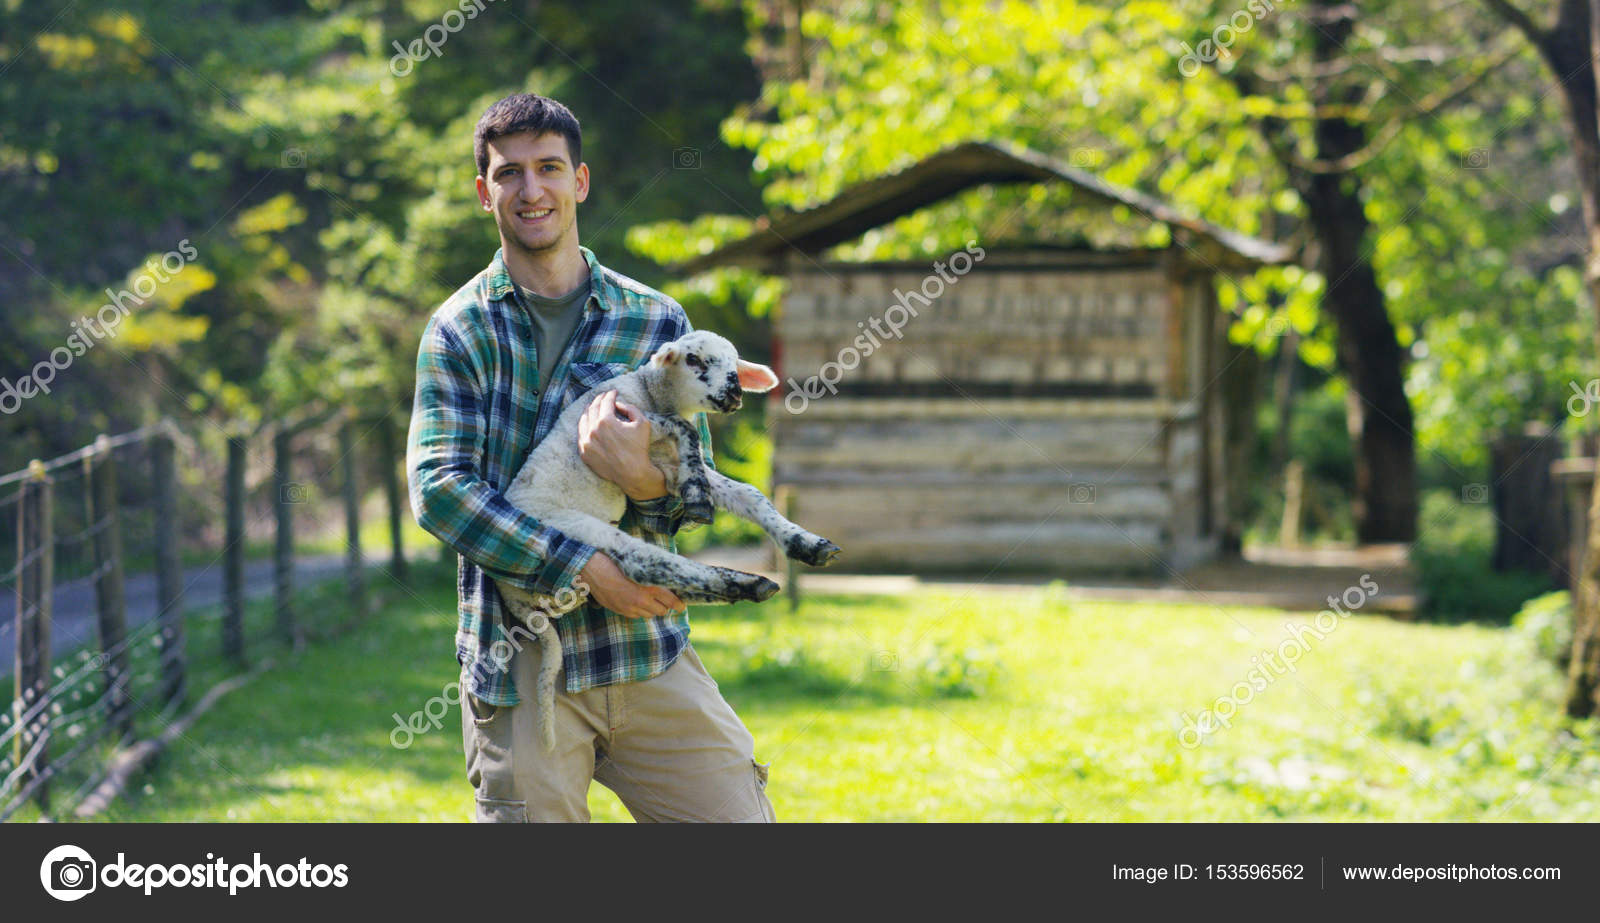 A Young Handsome And Smiling Farmer Holding A Lamb Young Cub Has